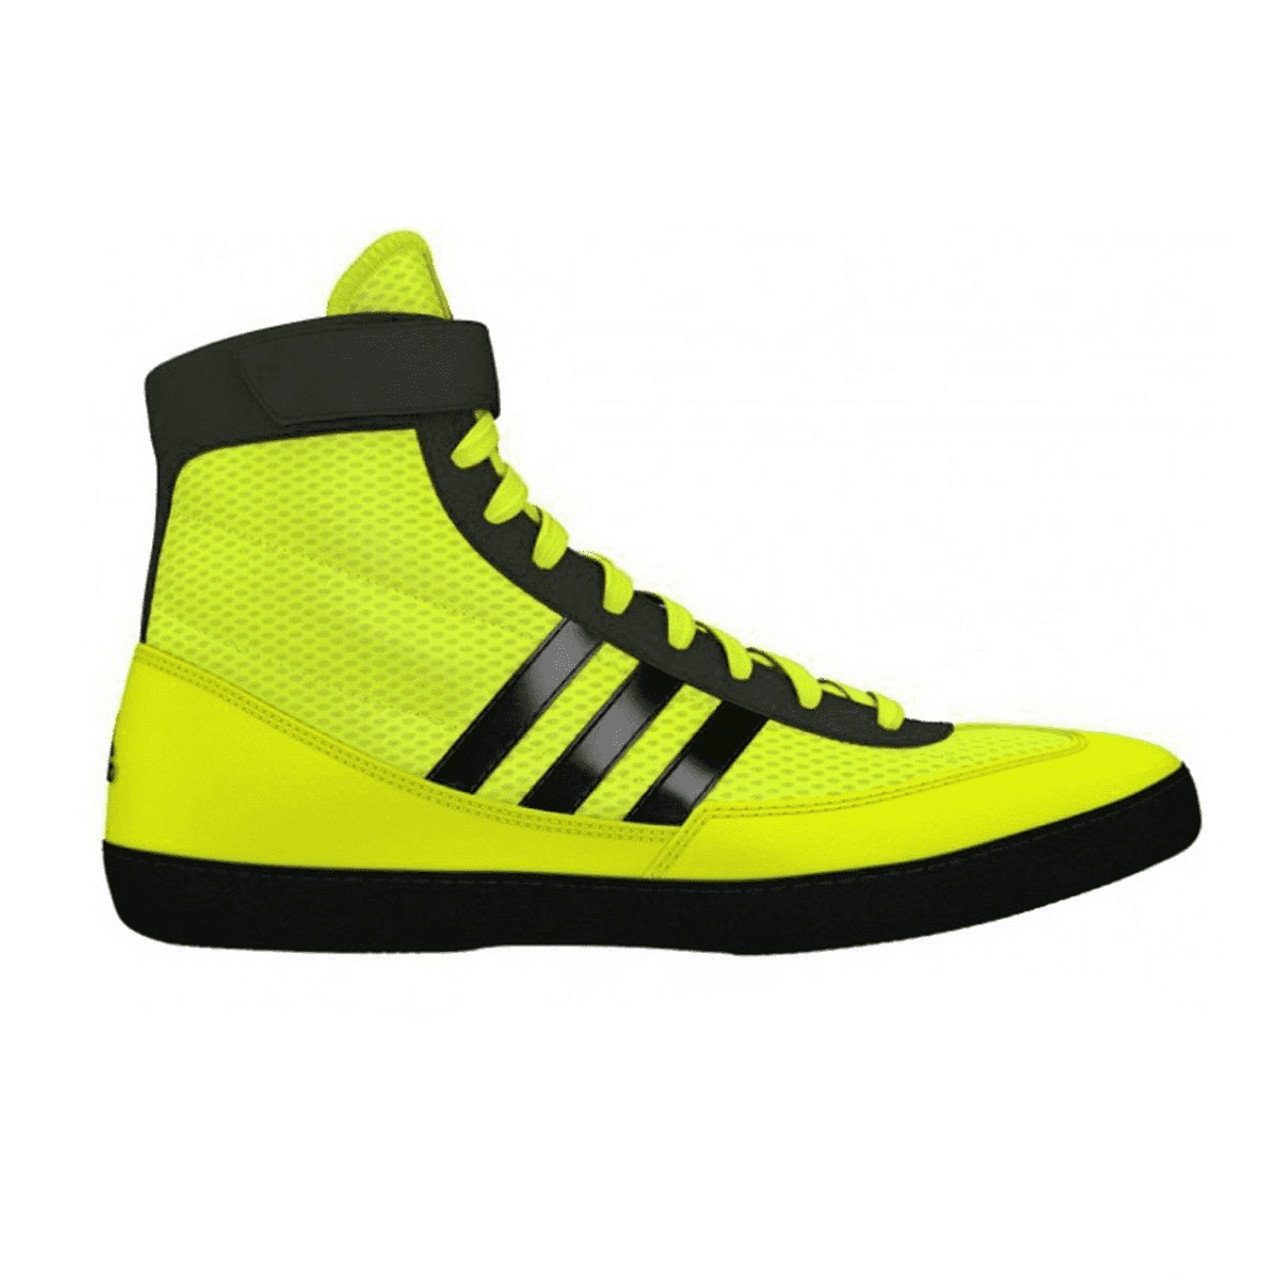 Sureste tanto ozono  Adidas Combat Speed 4 Wrestling Shoes | Adult Wrestling Shoes